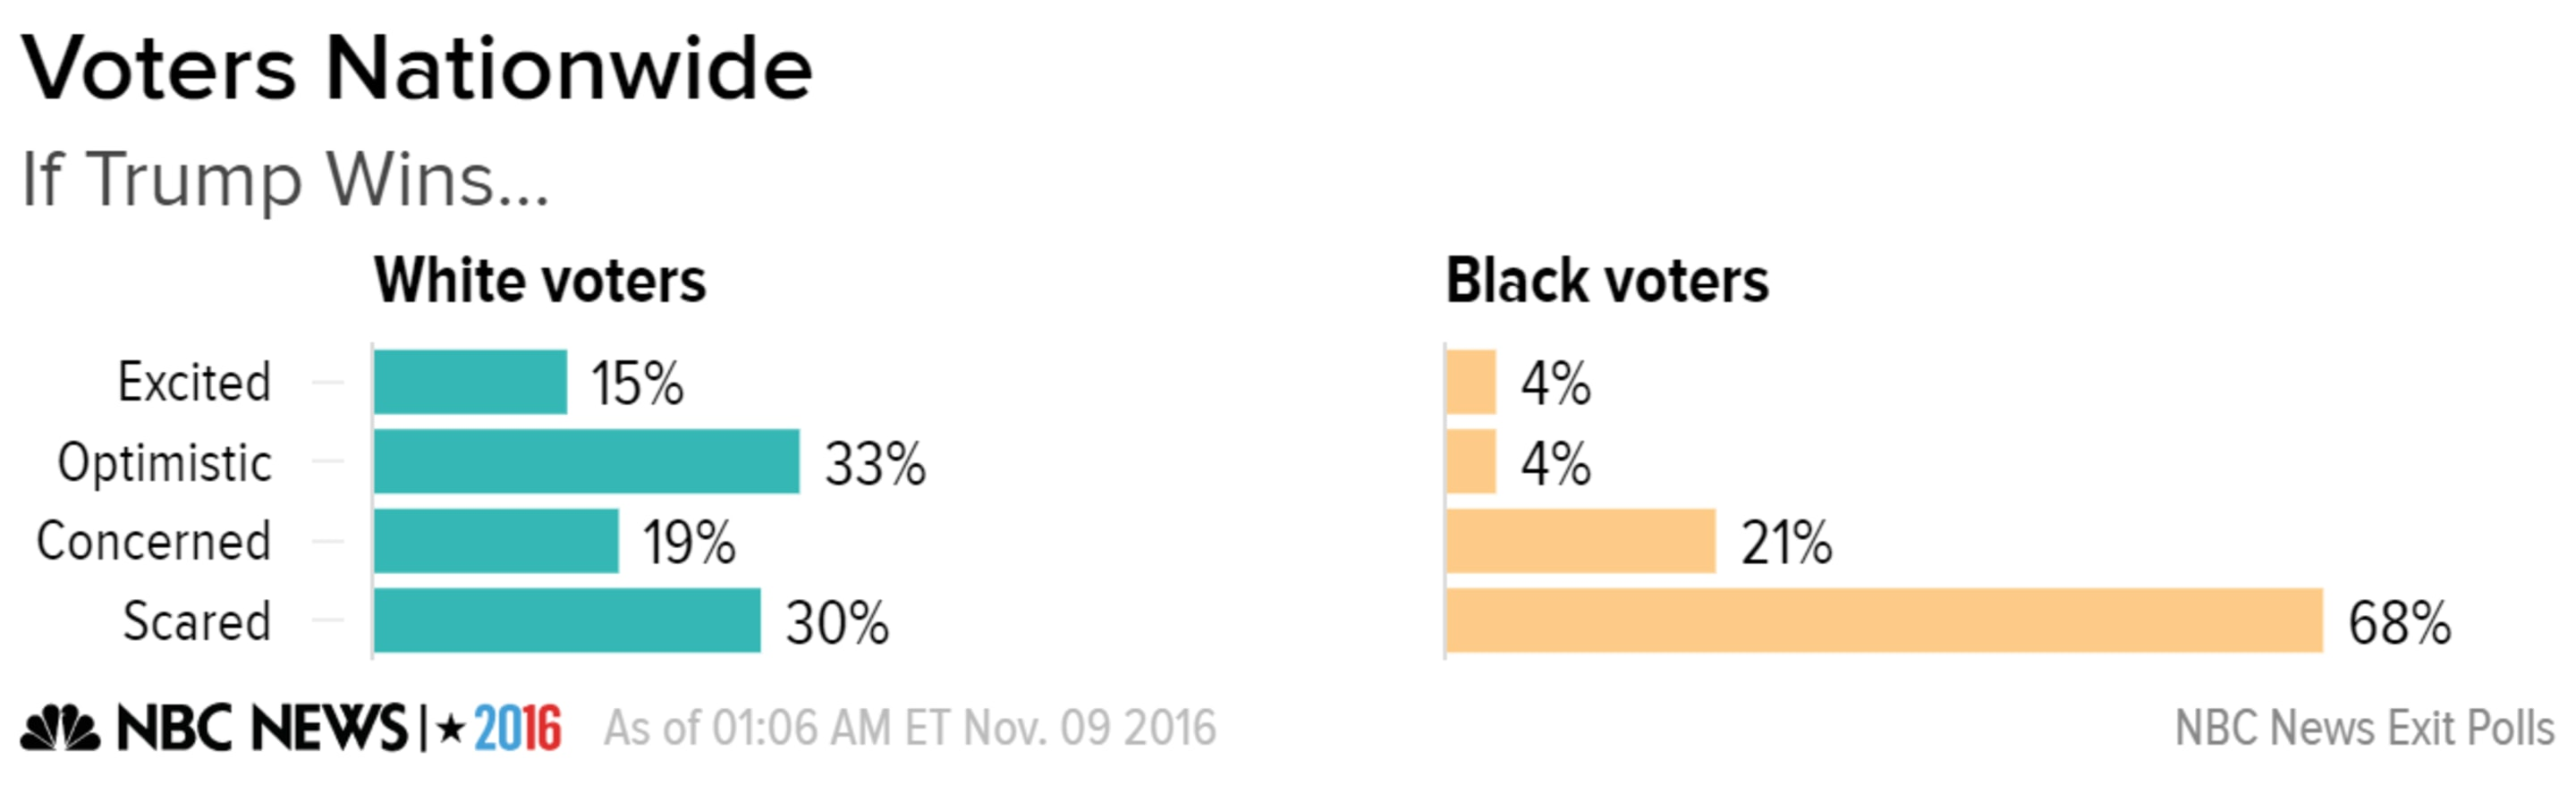 The Other Half Of White Voters Is Expressing Alarm Including Three In 10 Indicating Saying They Are Scared About A Trump Presidency